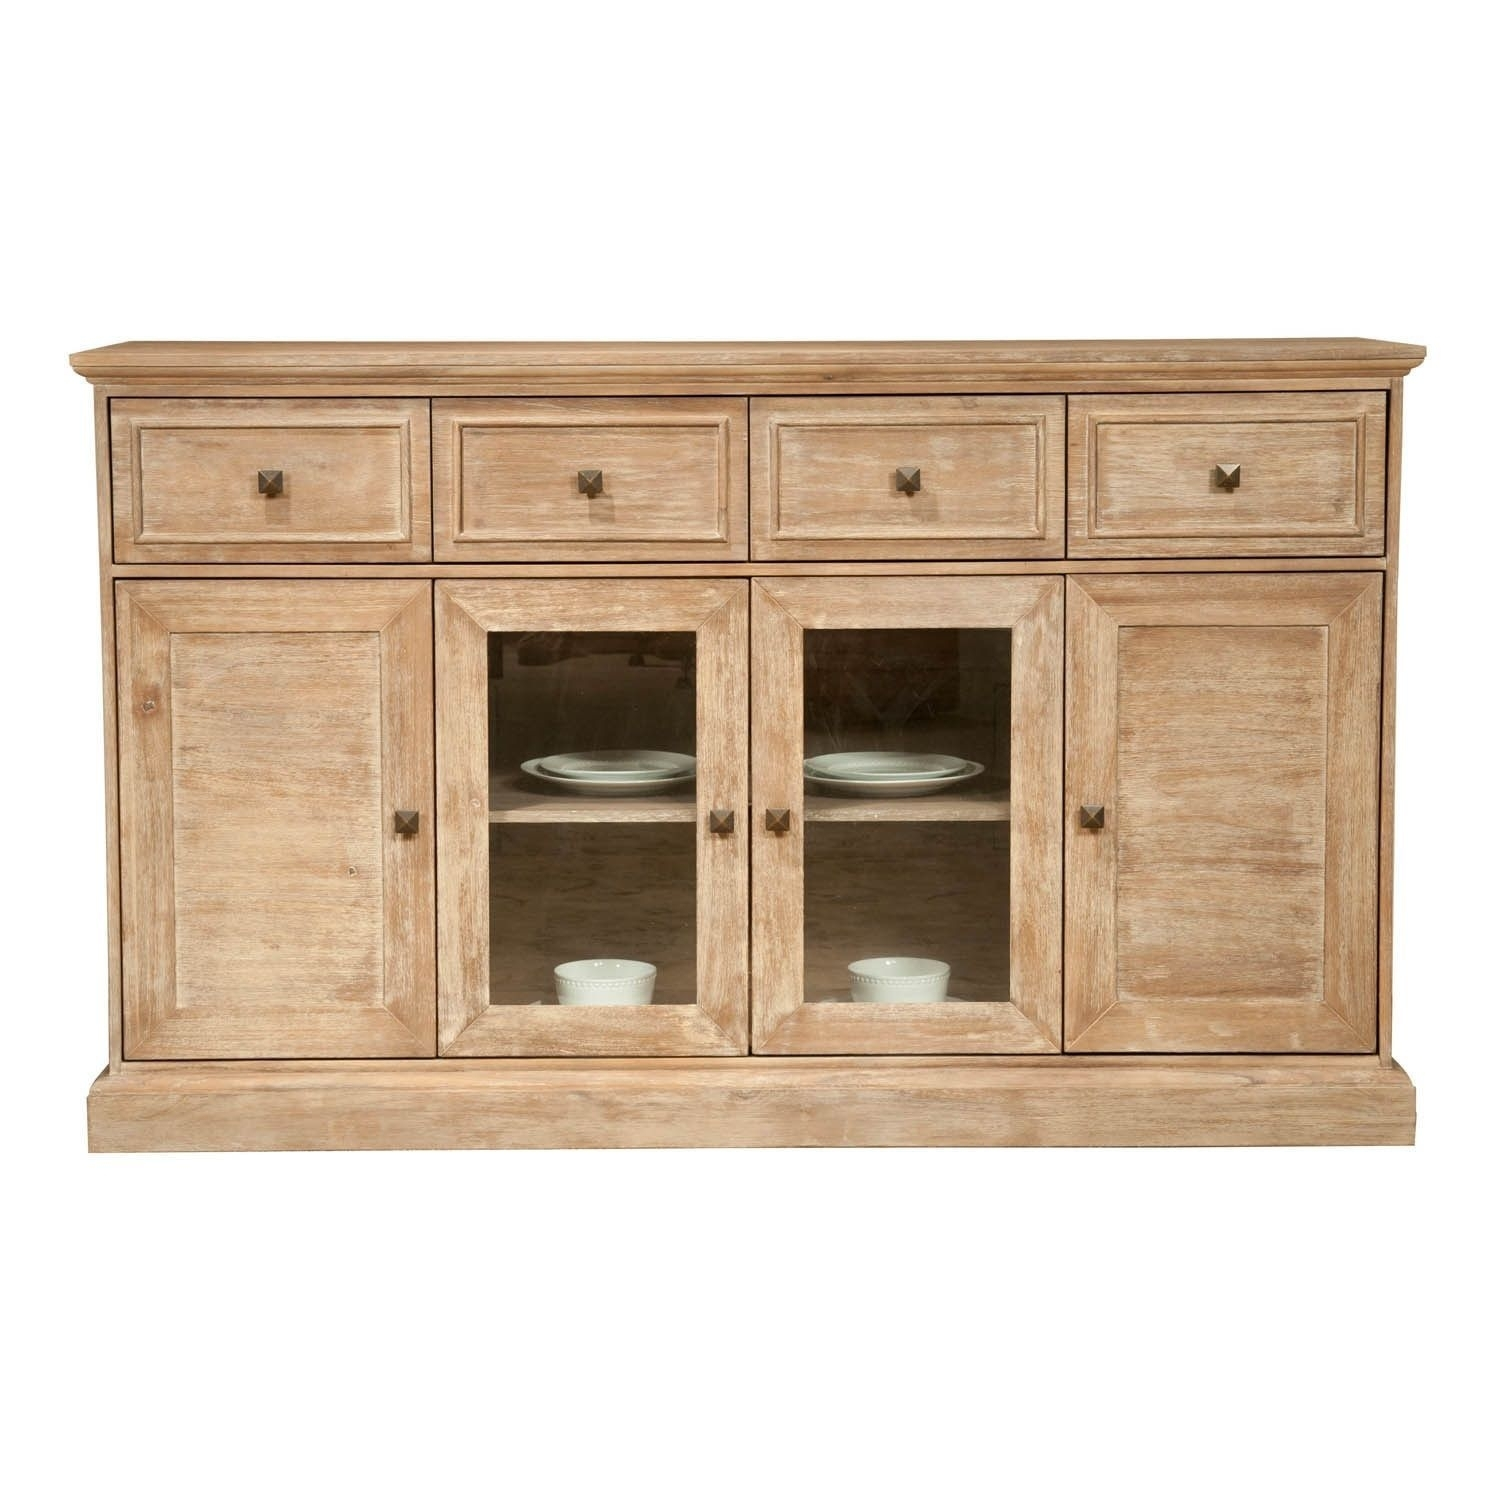 Gray Manor Harlan Stone Wash Acacia 4-Door Dining Sideboard (Stone pertaining to Acacia Wood 4-Door Sideboards (Image 9 of 30)